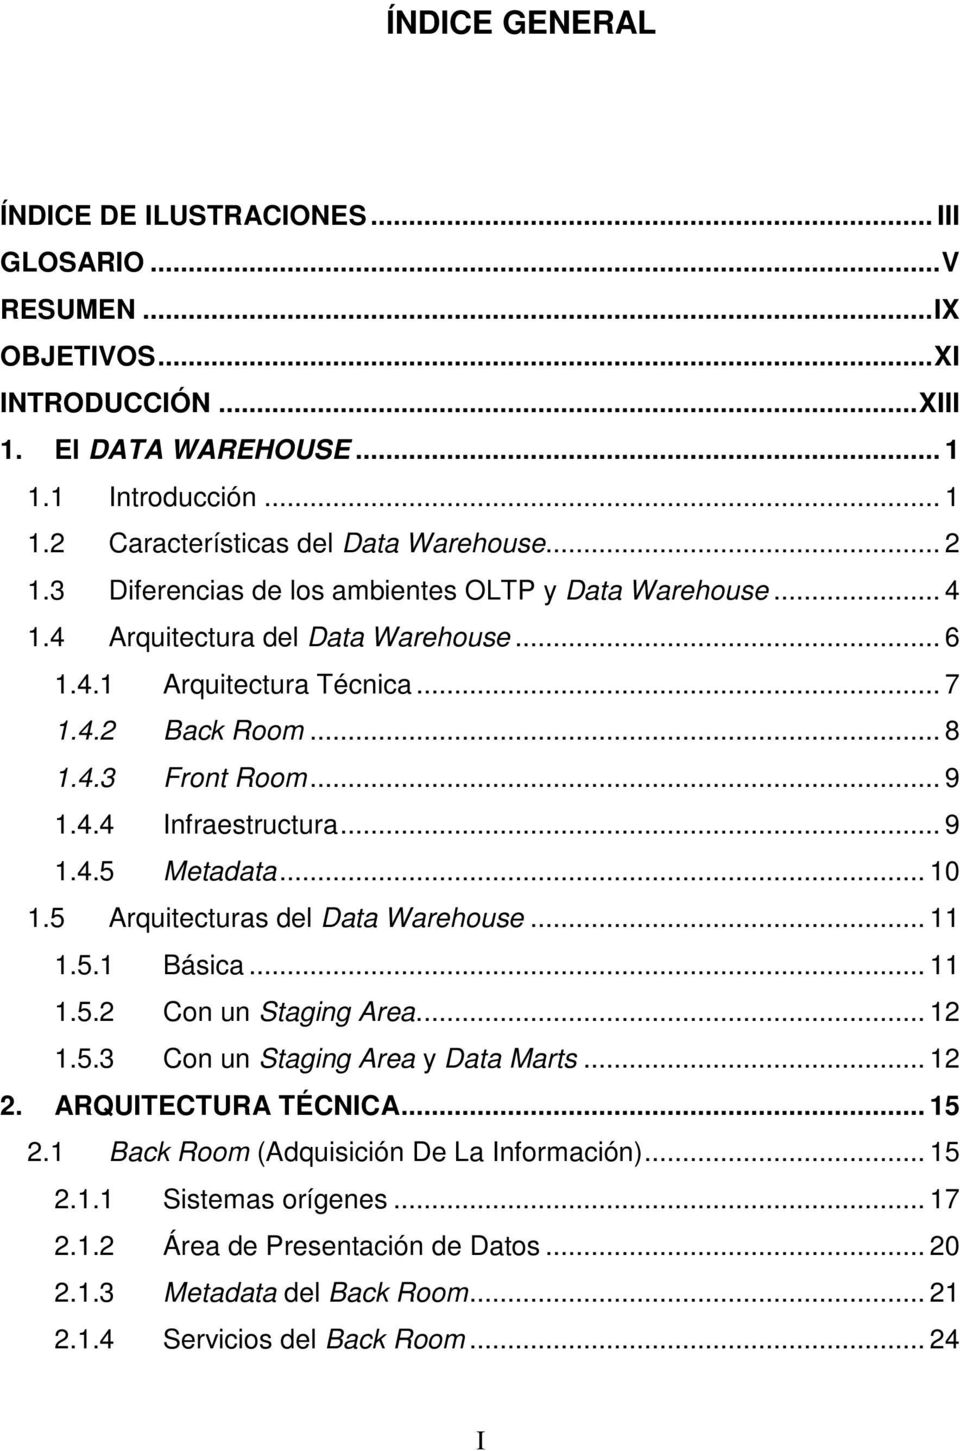 .. 9 1.4.5 Metadata... 10 1.5 Arquitecturas del Data Warehouse... 11 1.5.1 Básica... 11 1.5.2 Con un Staging Area... 12 1.5.3 Con un Staging Area y Data Marts... 12 2. ARQUITECTURA TÉCNICA... 15 2.